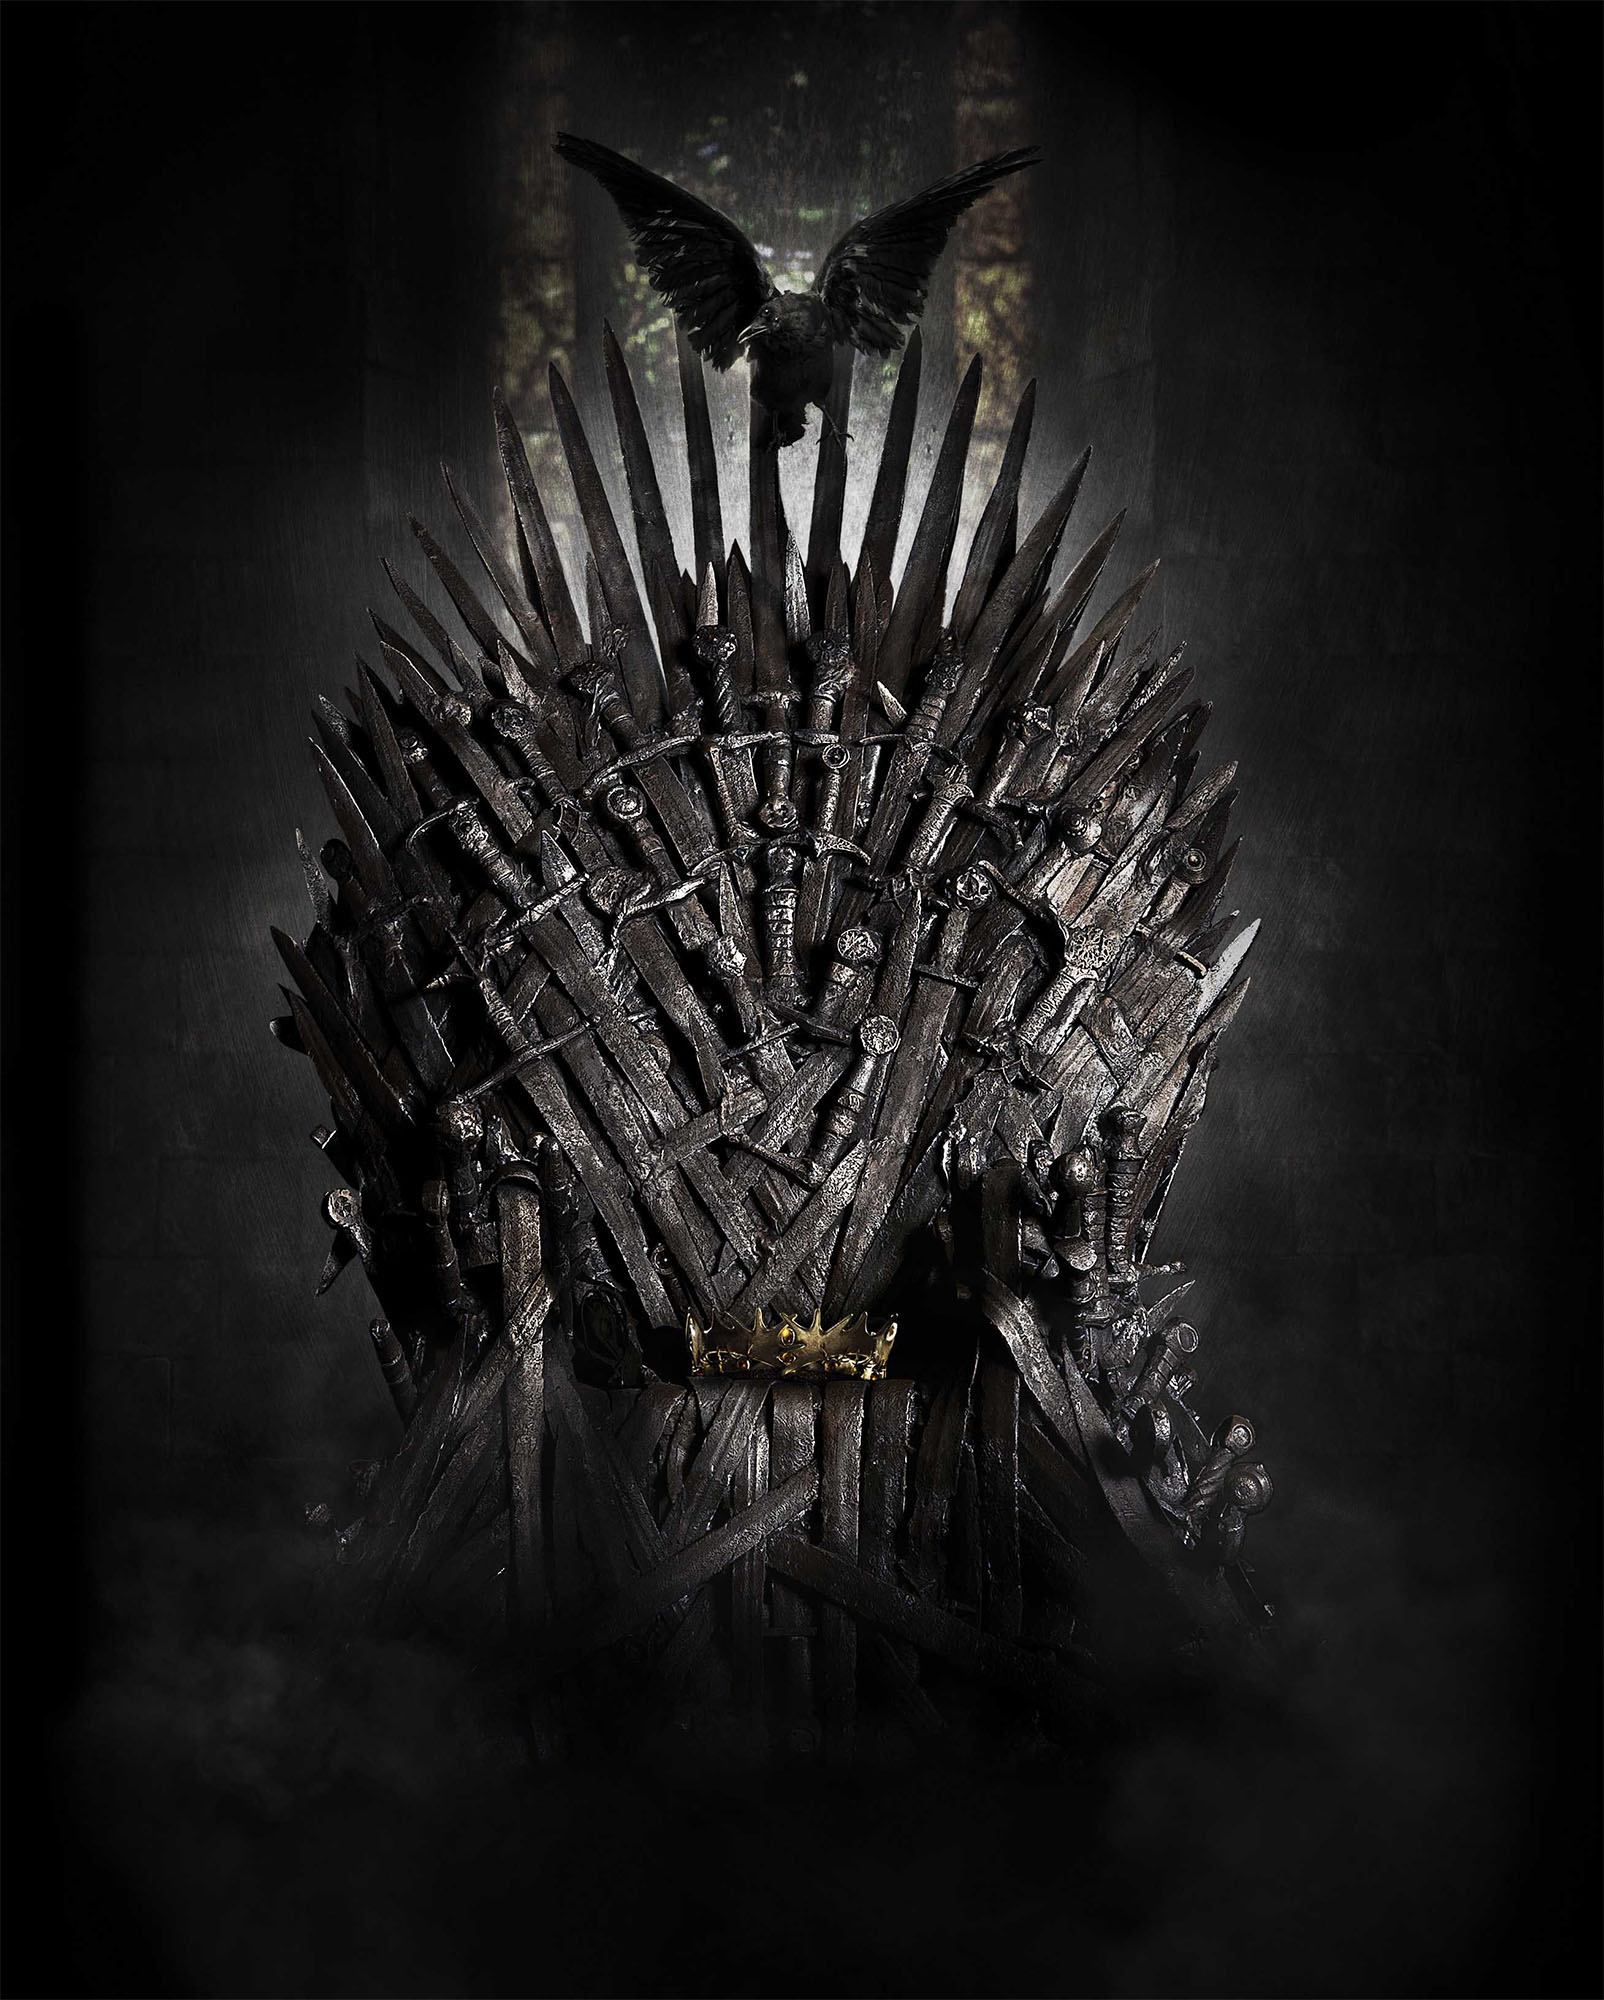 iron throne chair wedding covers and table decorations game of nodes a social network analysis